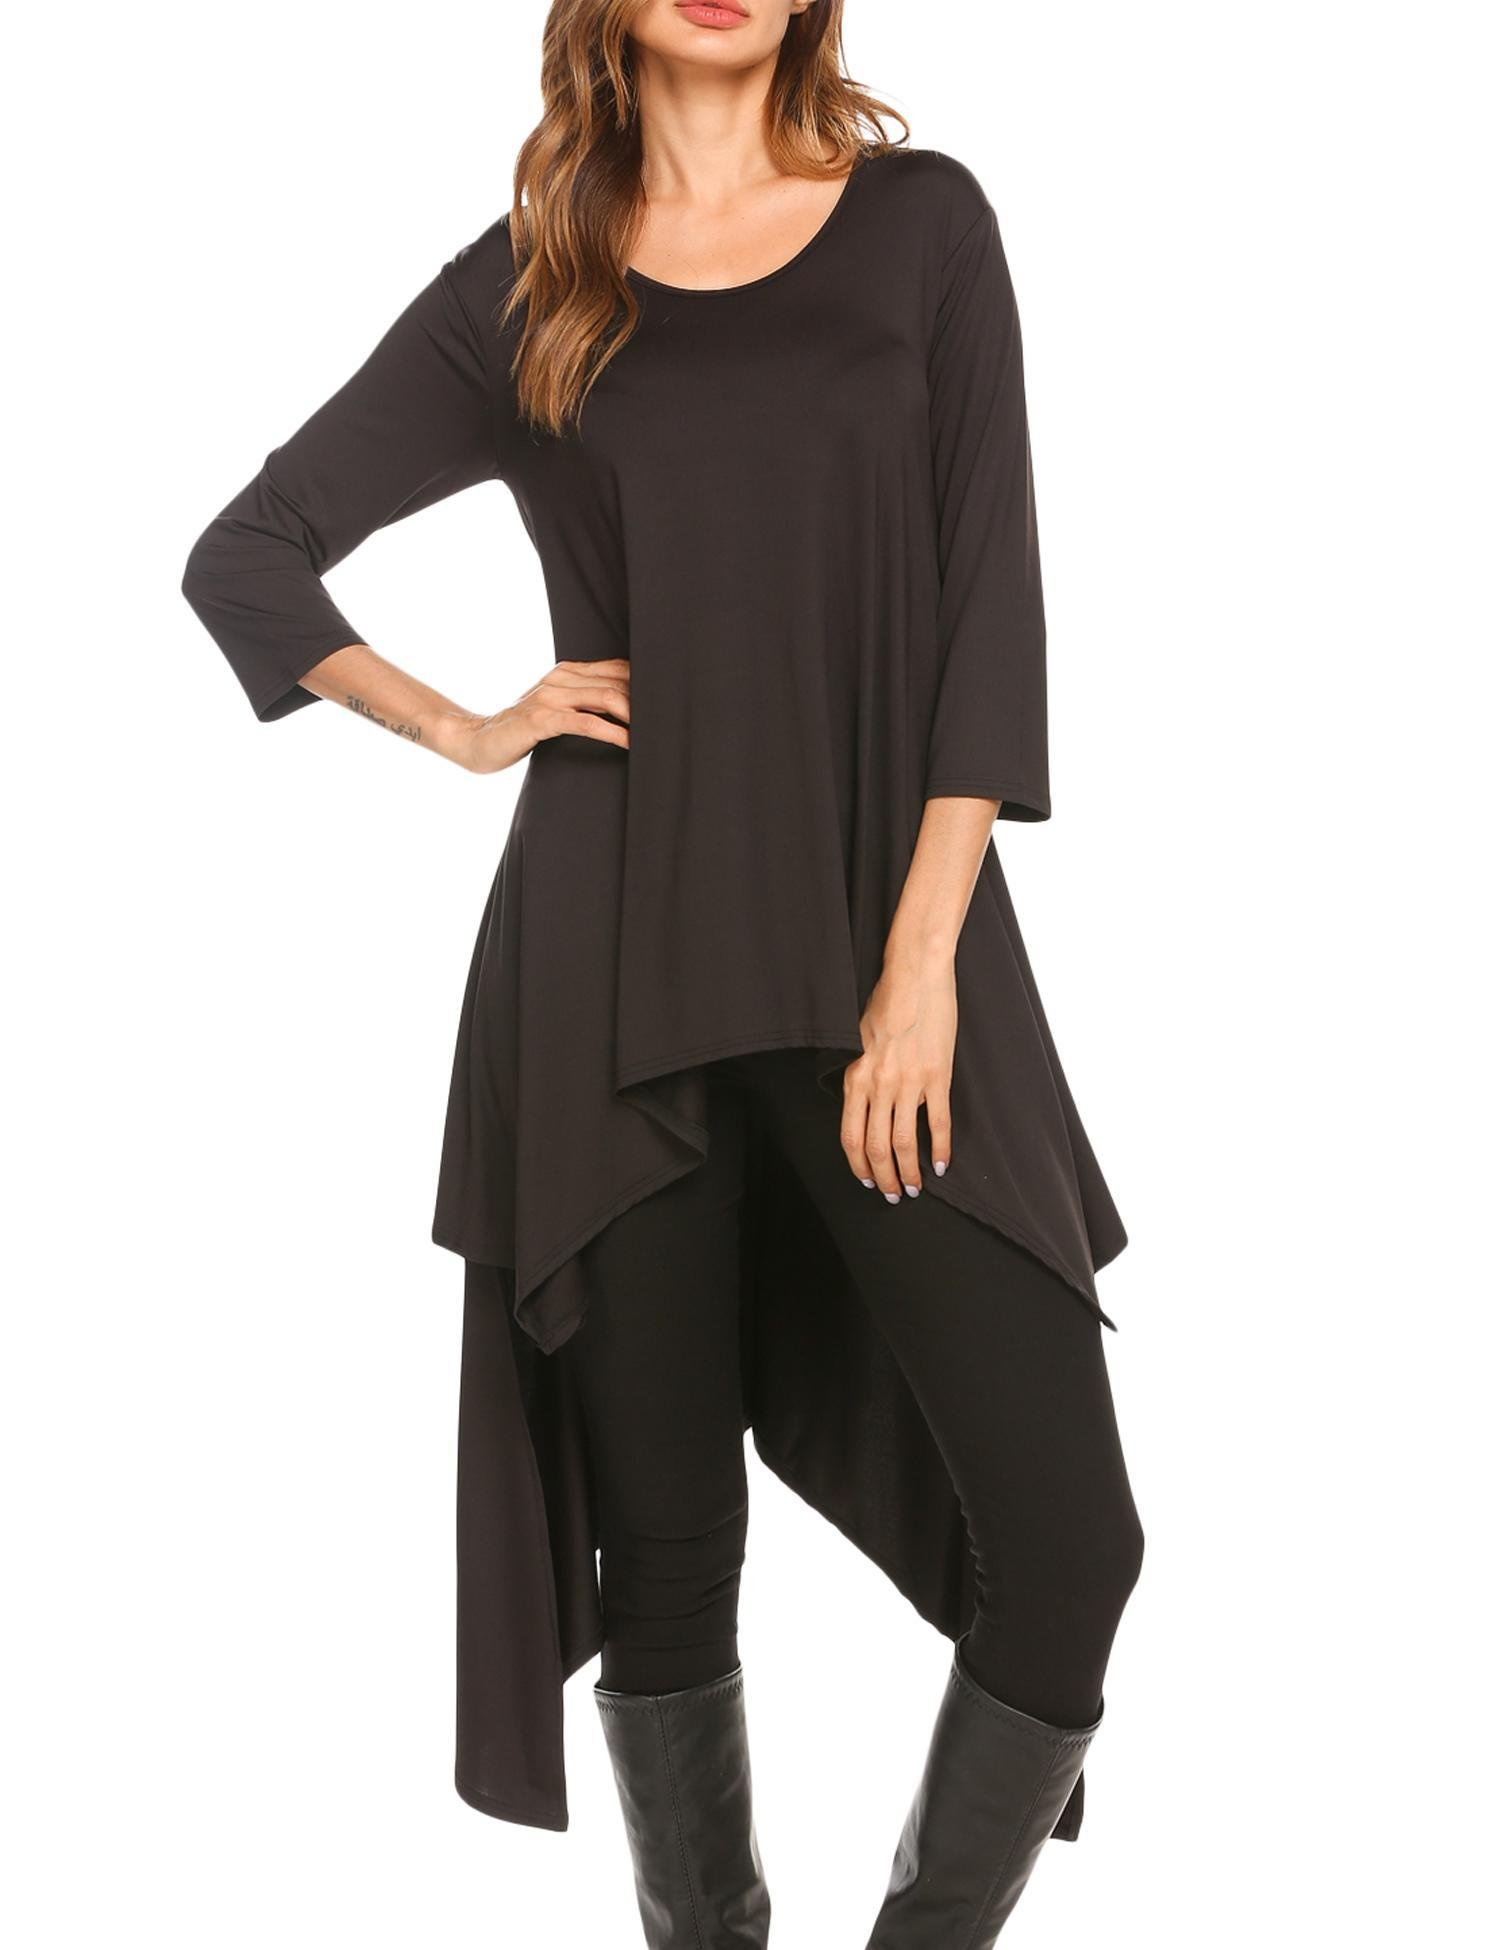 Mofavor Women's Casual Crewneck 3/4 Sleeve High Low Loose Swing T-Shirt Tunic, Black, XXL